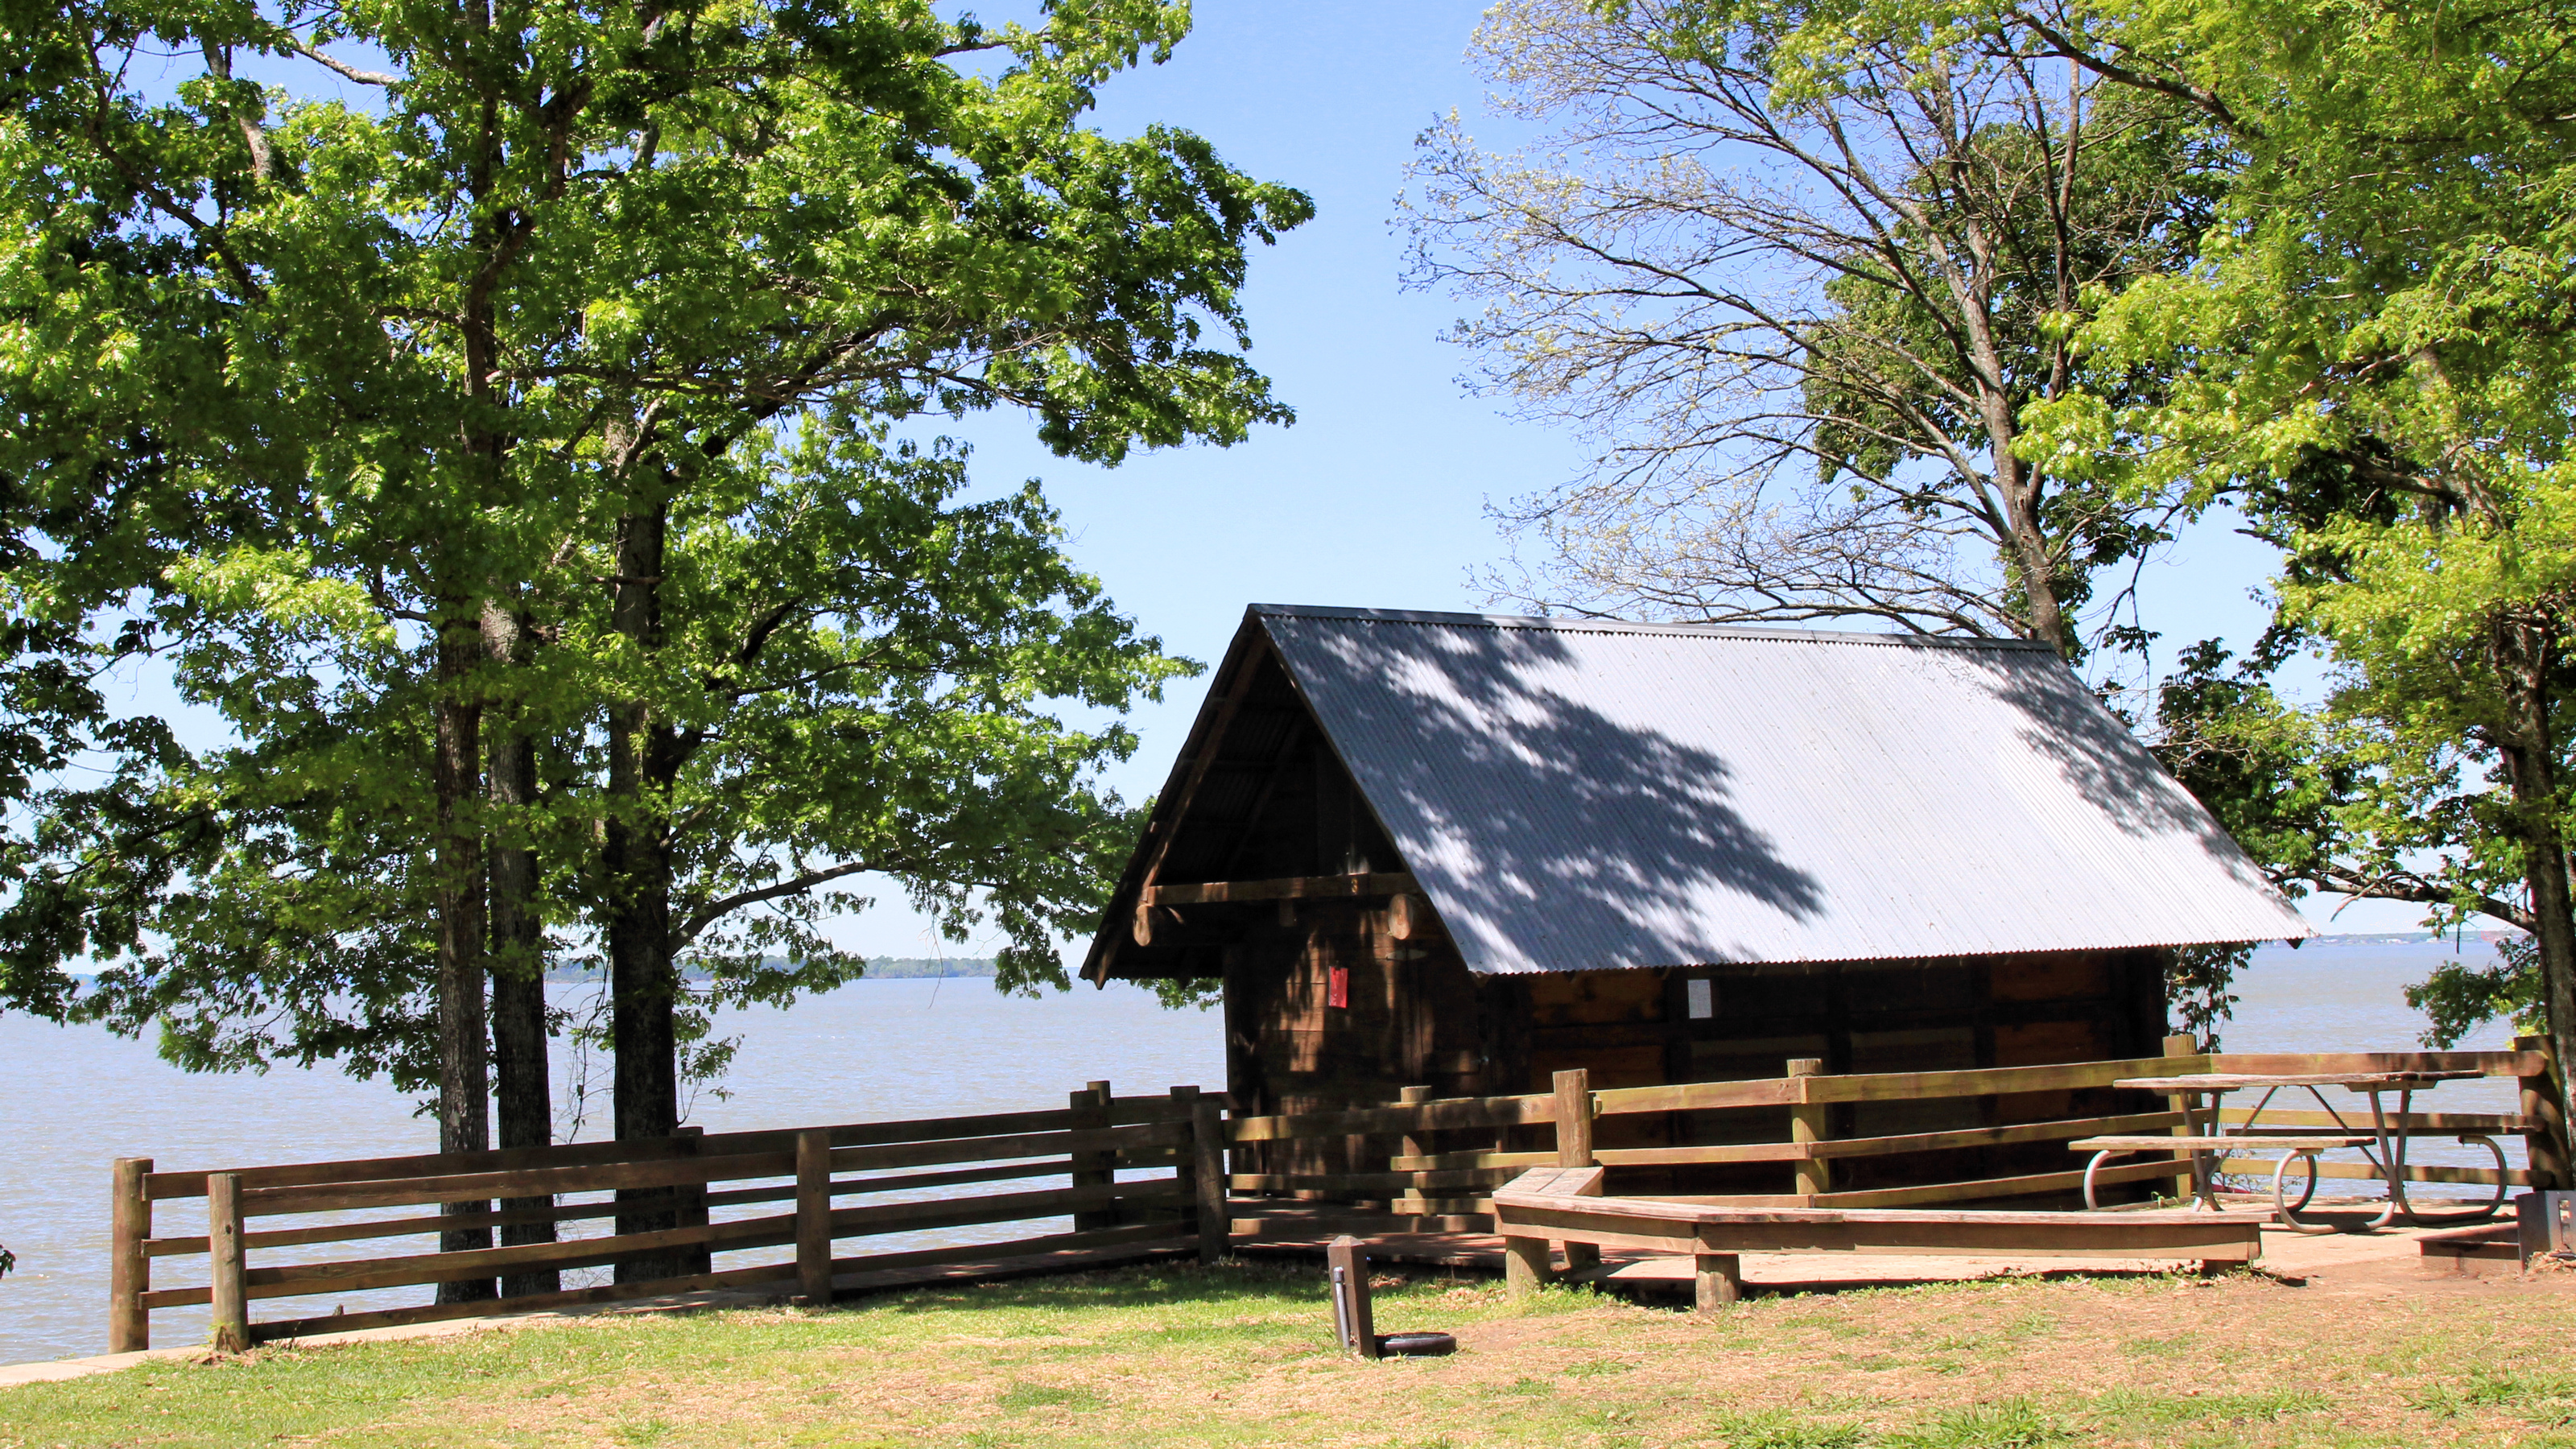 Bon File:Lake Livingston State Park Cabin